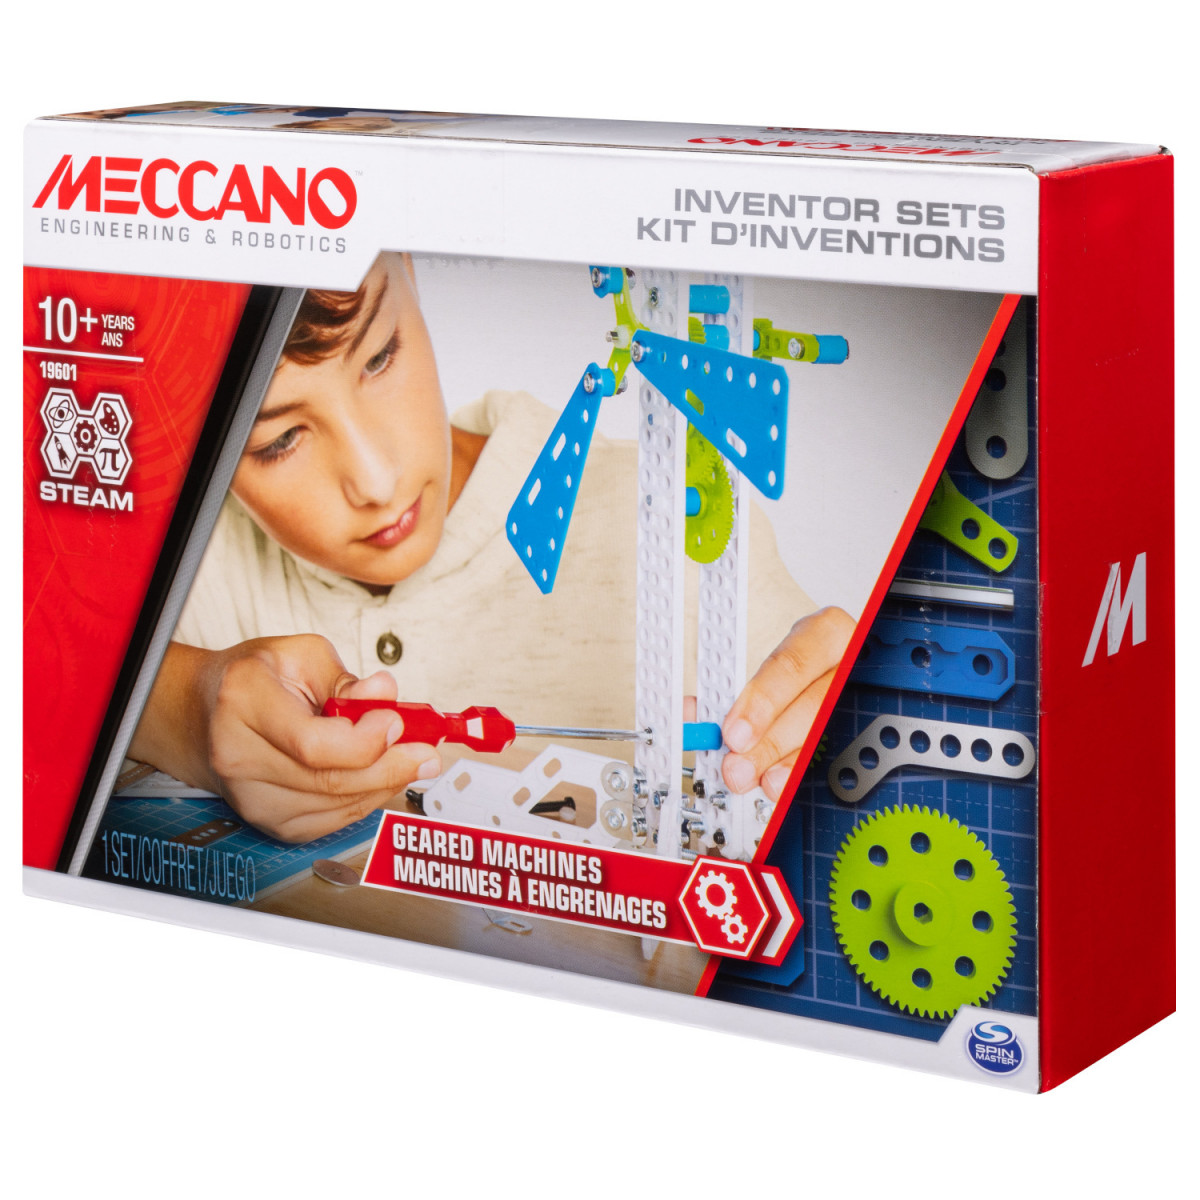 6047097 SET 3 KIT D'INVENTIONS ENGRENAGES MECCANO